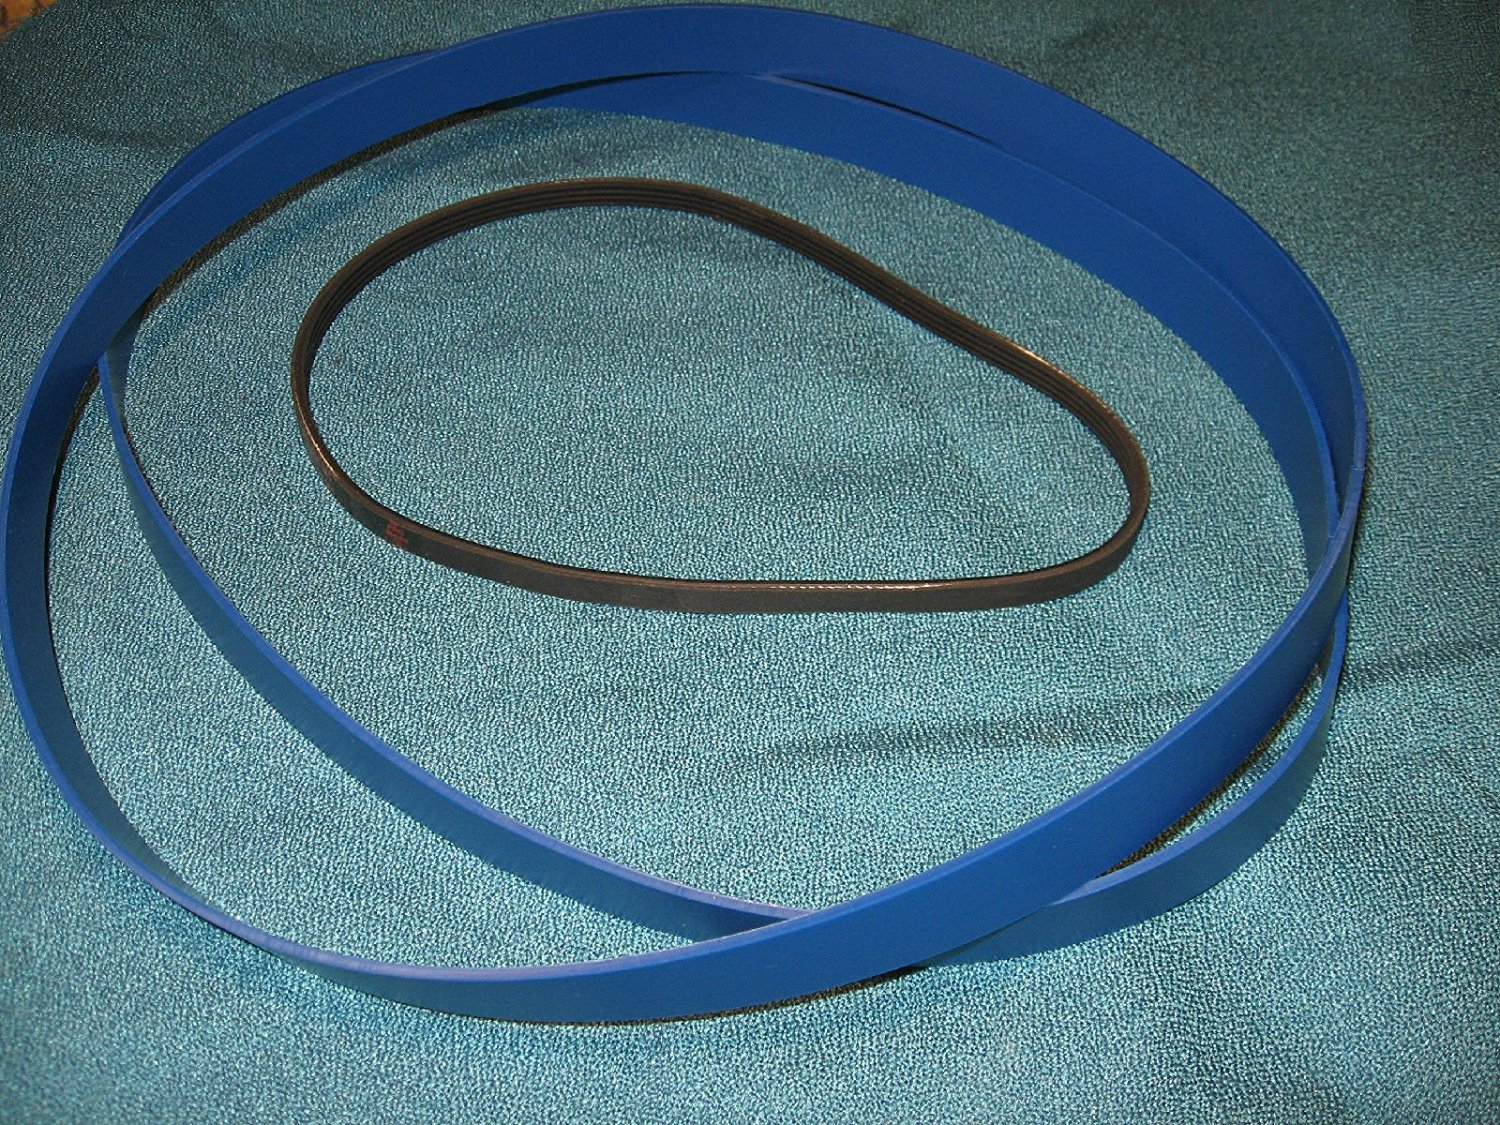 BLUE MAX HEAVY DUTY URETHANE BAND SAW TIRES SET AND DRIVE BELT FOR RIKON 10-320